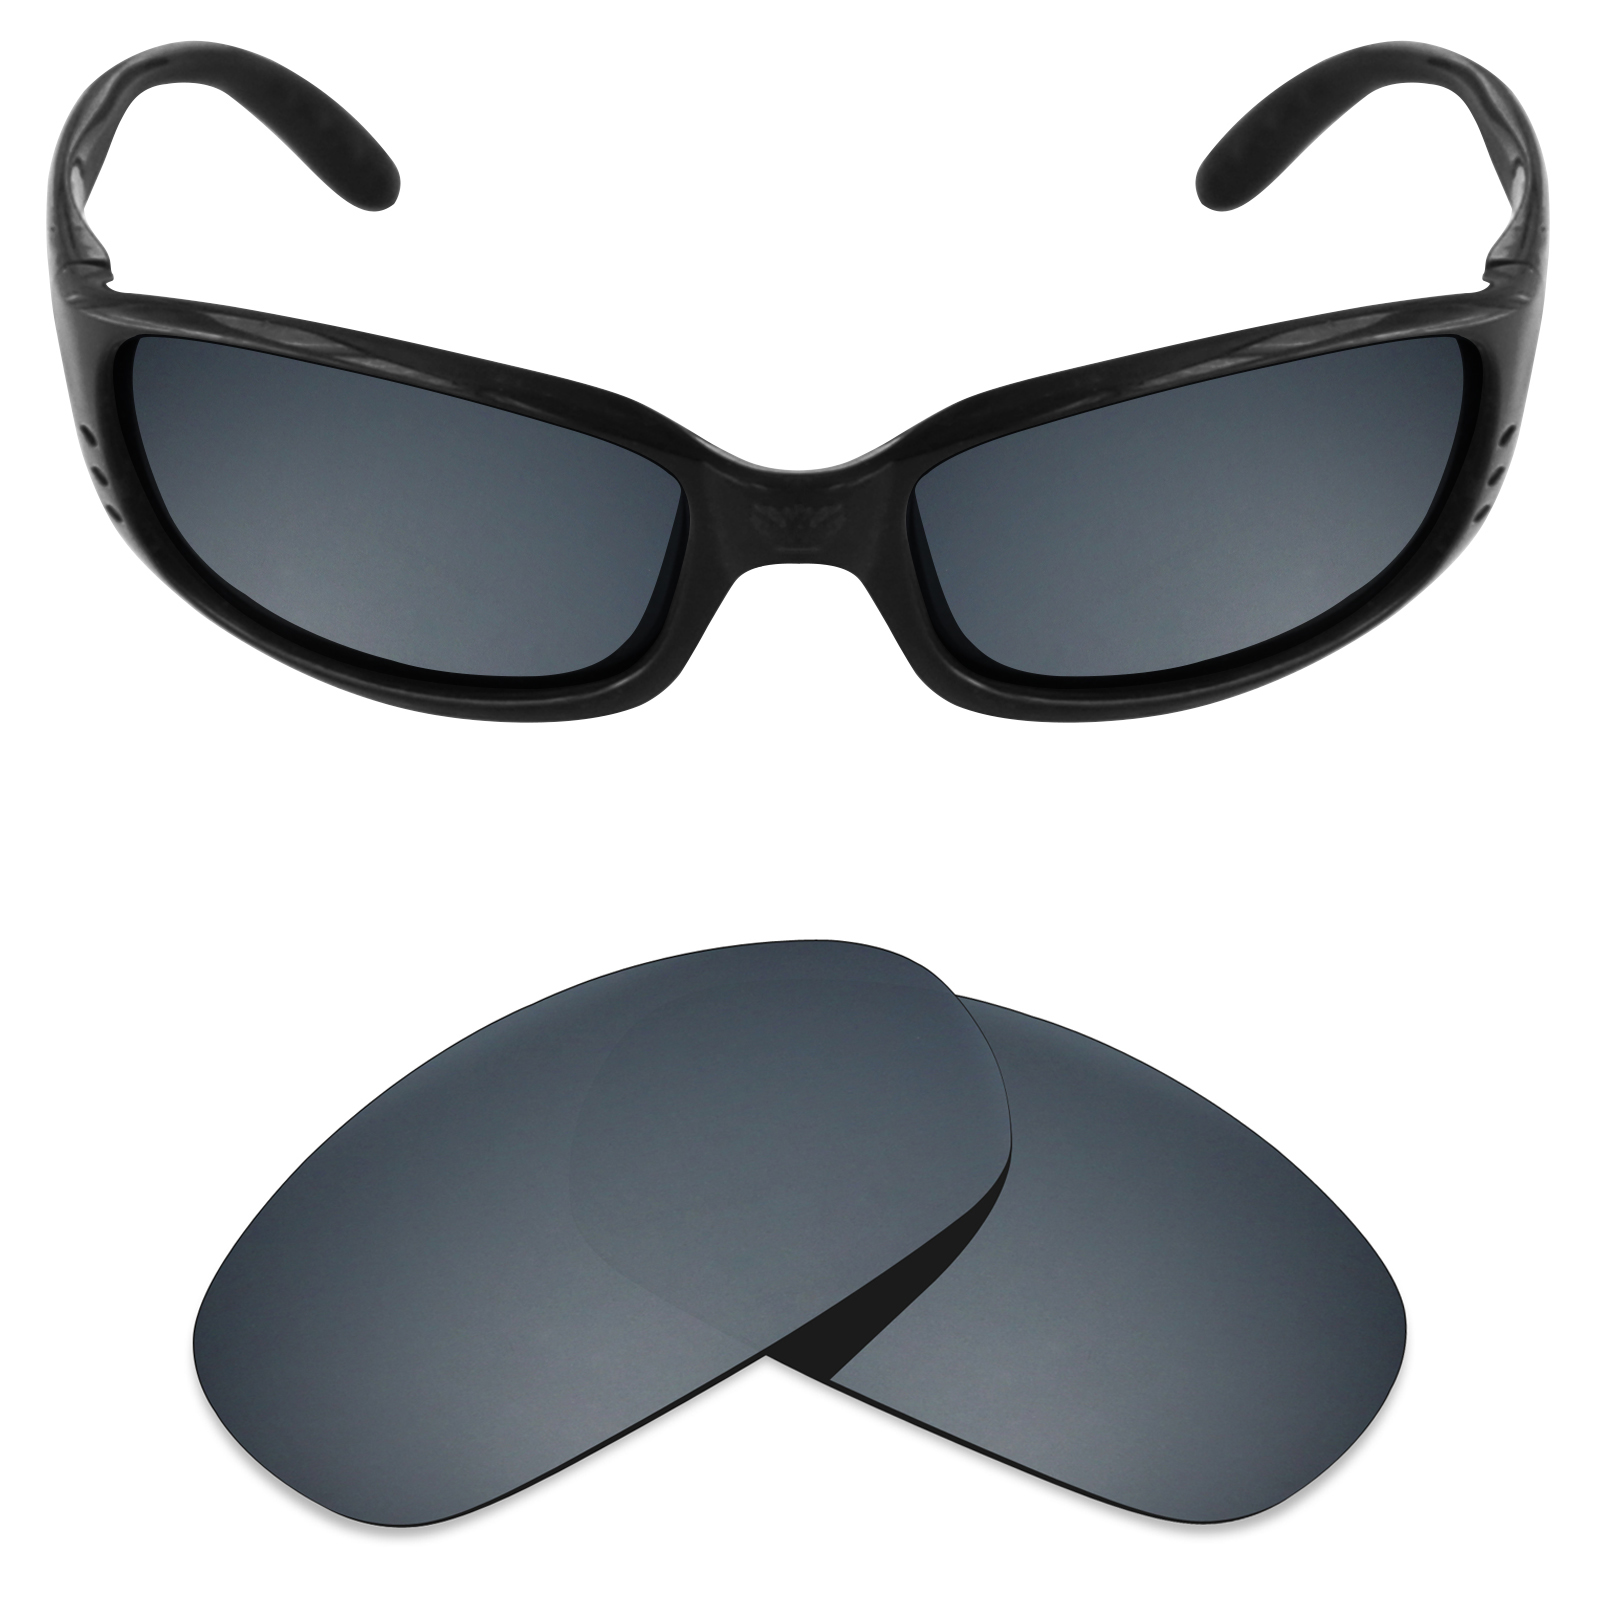 a20c9485f203 Mryok Anti-Scratch Polarized Replacement Lenses for Costa Del Mar Brine -  Opt.